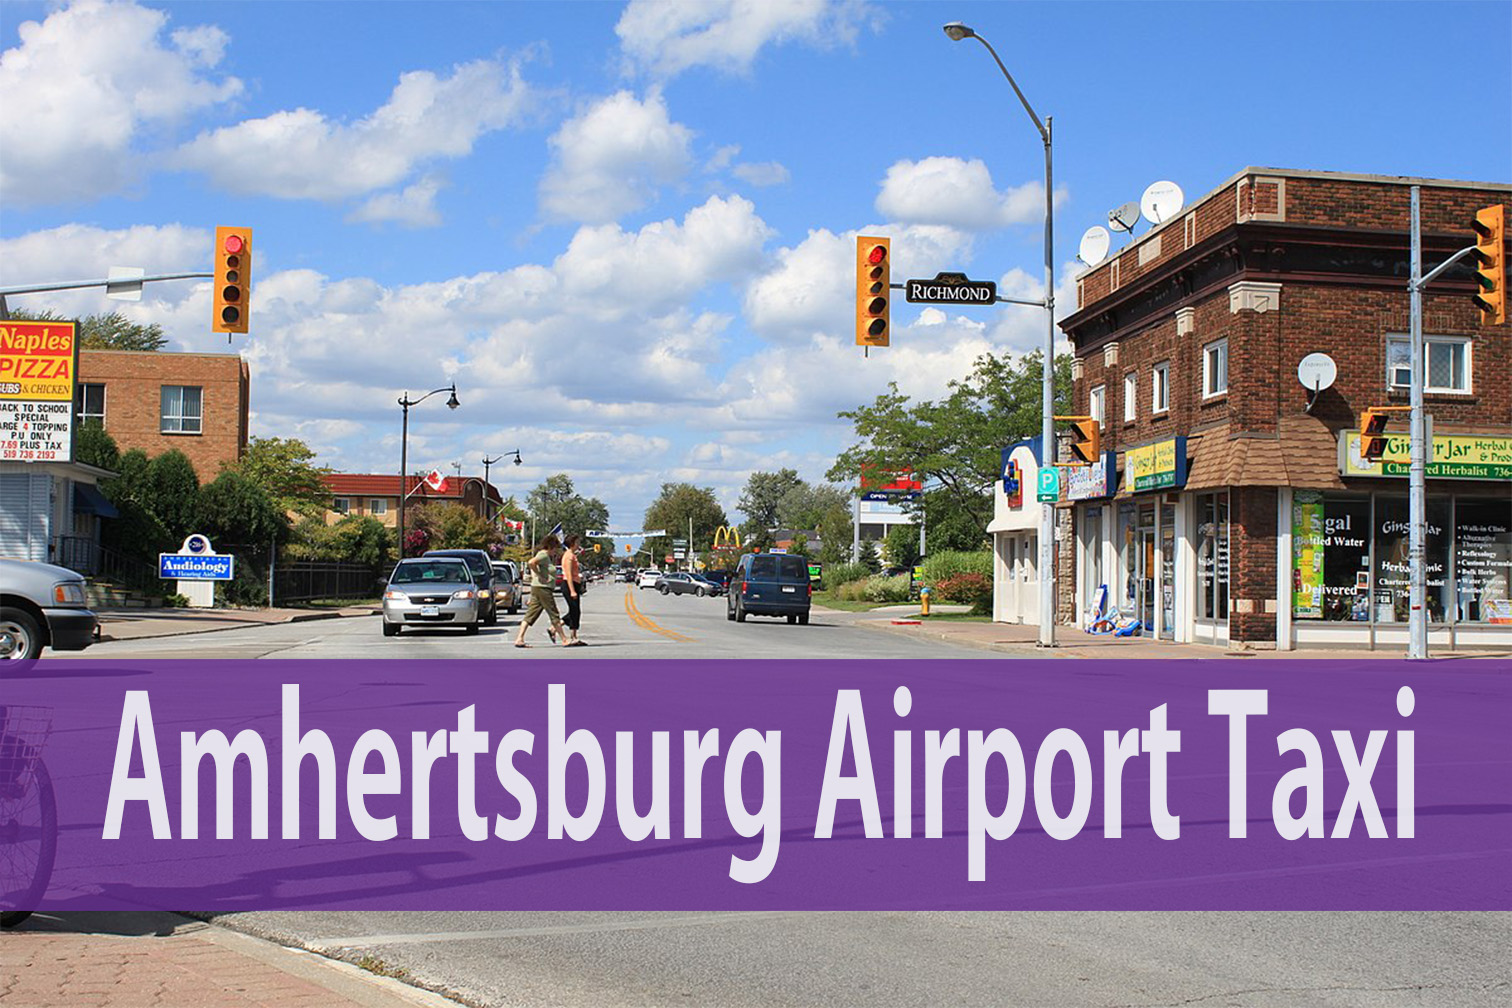 Amhertsburg airport taxi